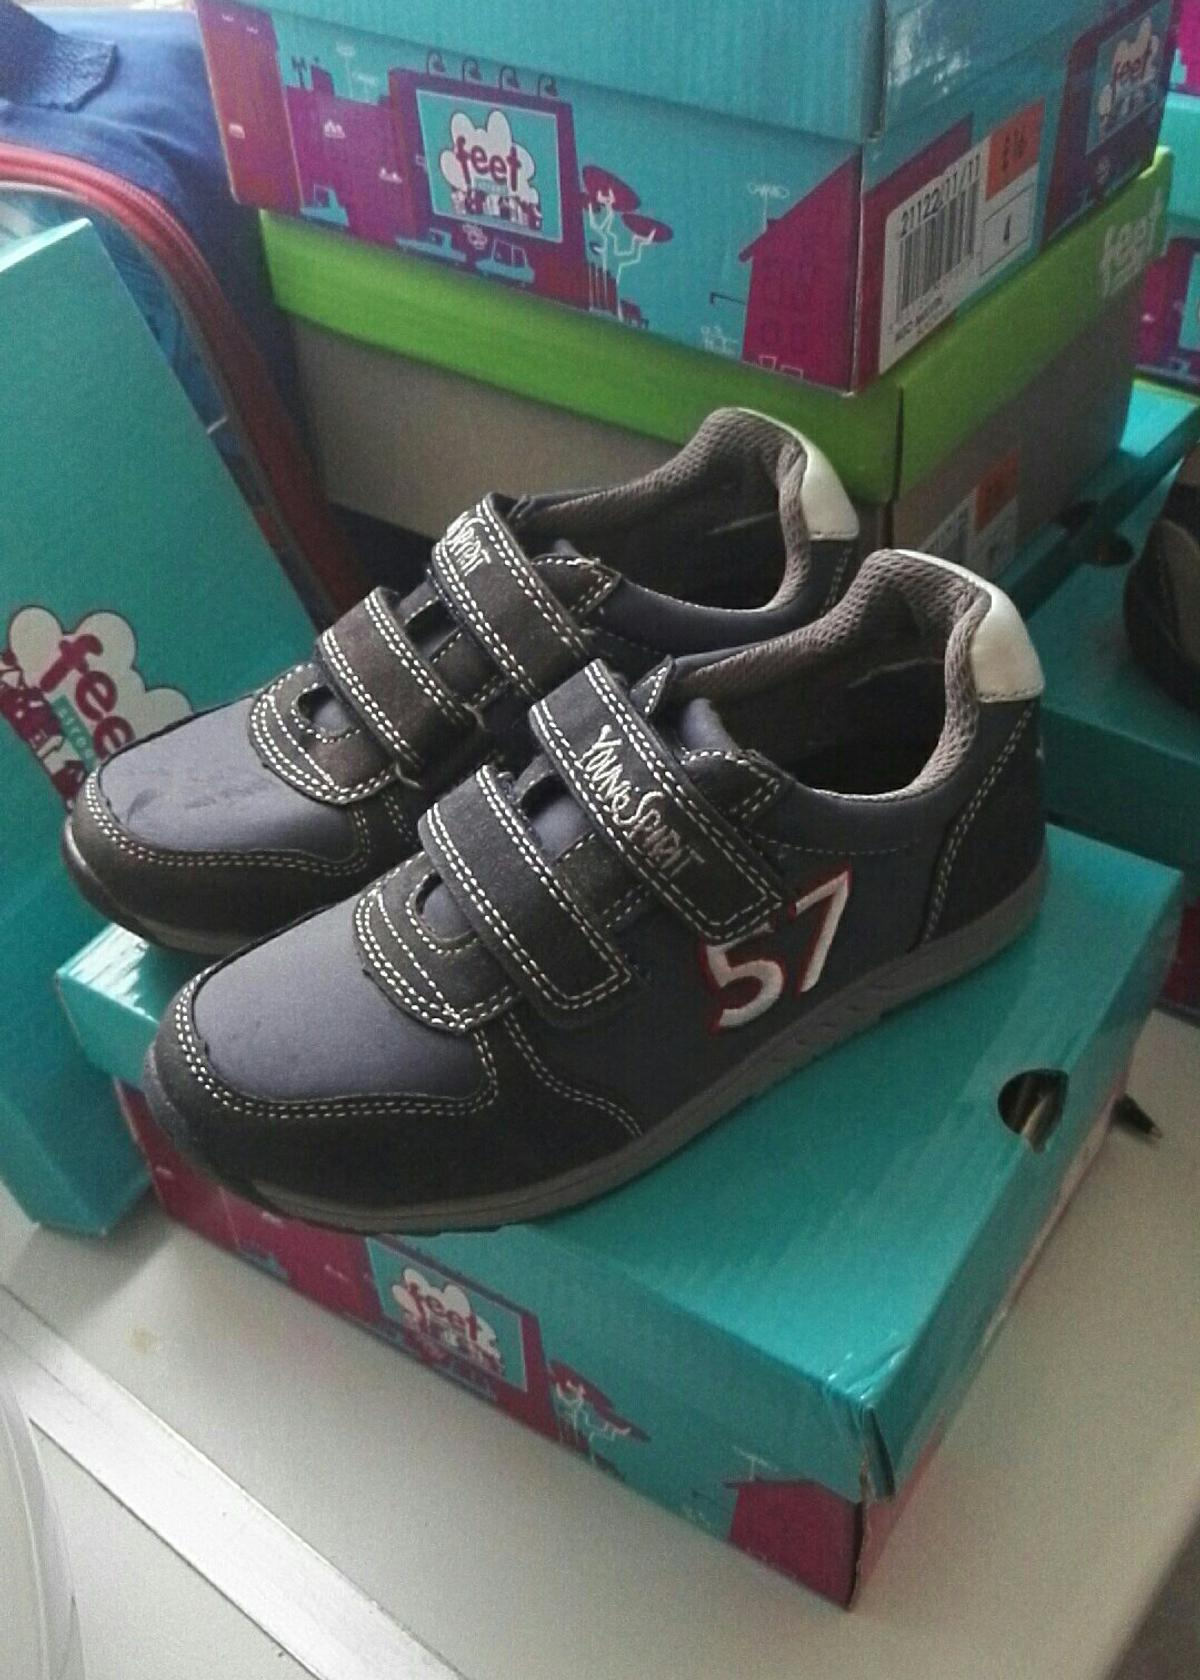 best supplier purchase cheap various colors Boys trainers size 10 in M40 Manchester for £10.00 for sale   Shpock